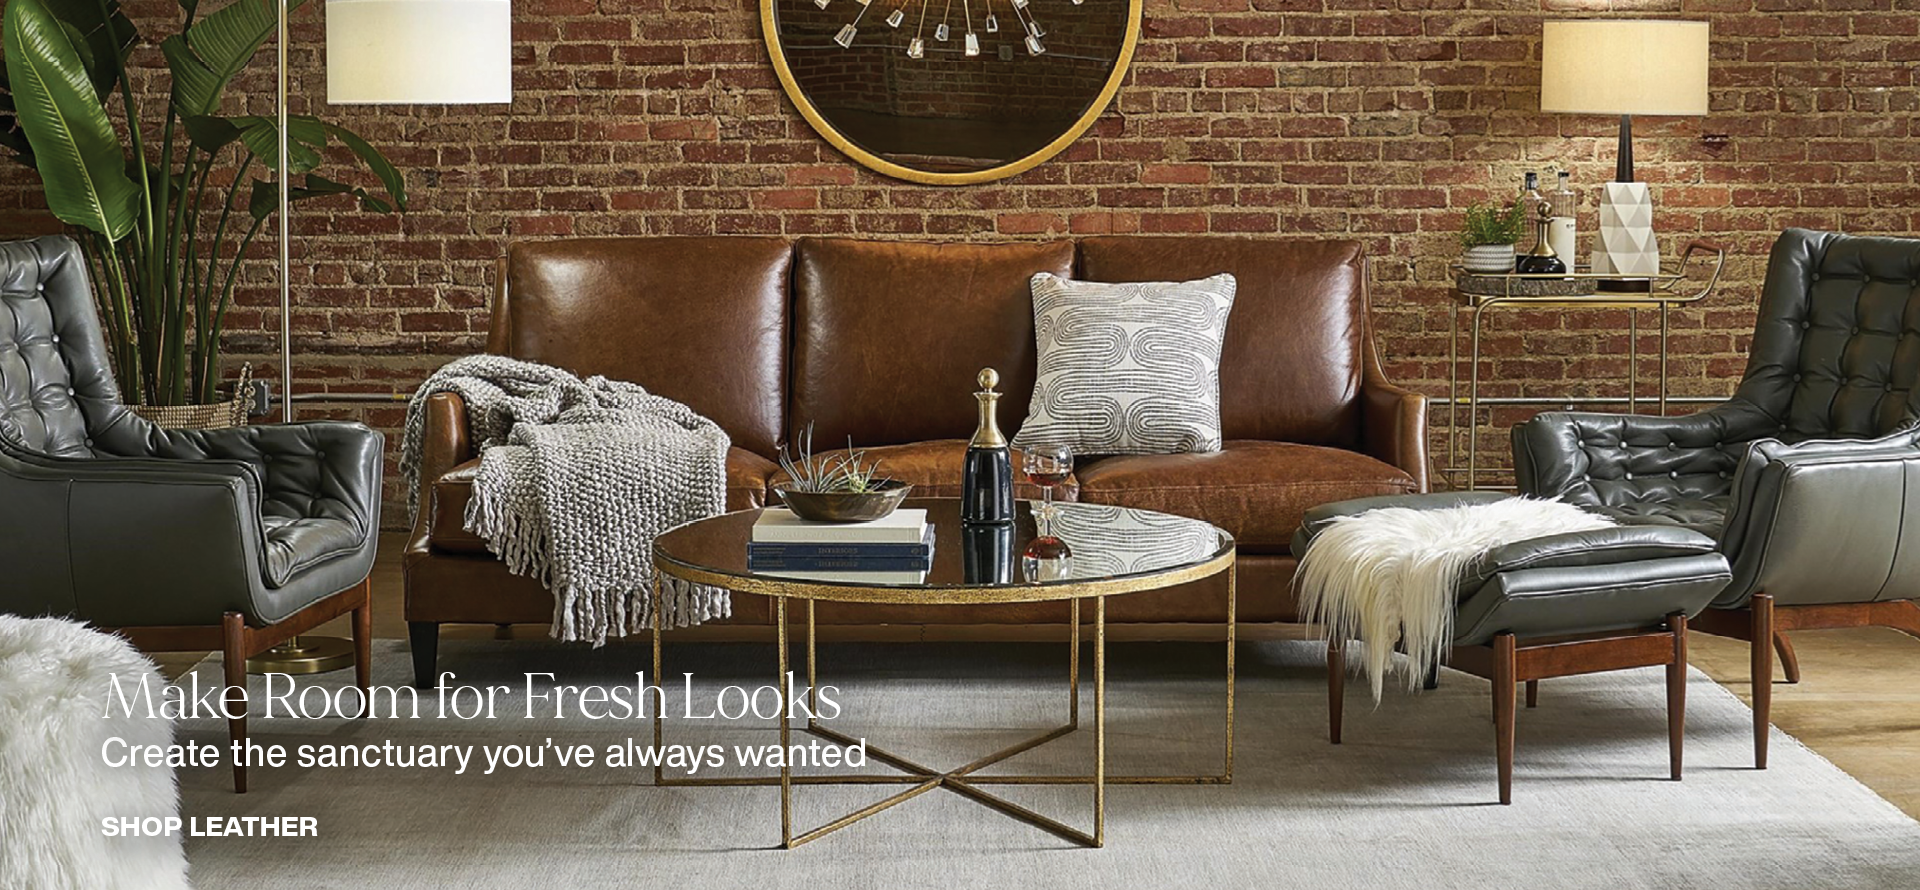 Sink into comfort with luxurious leather